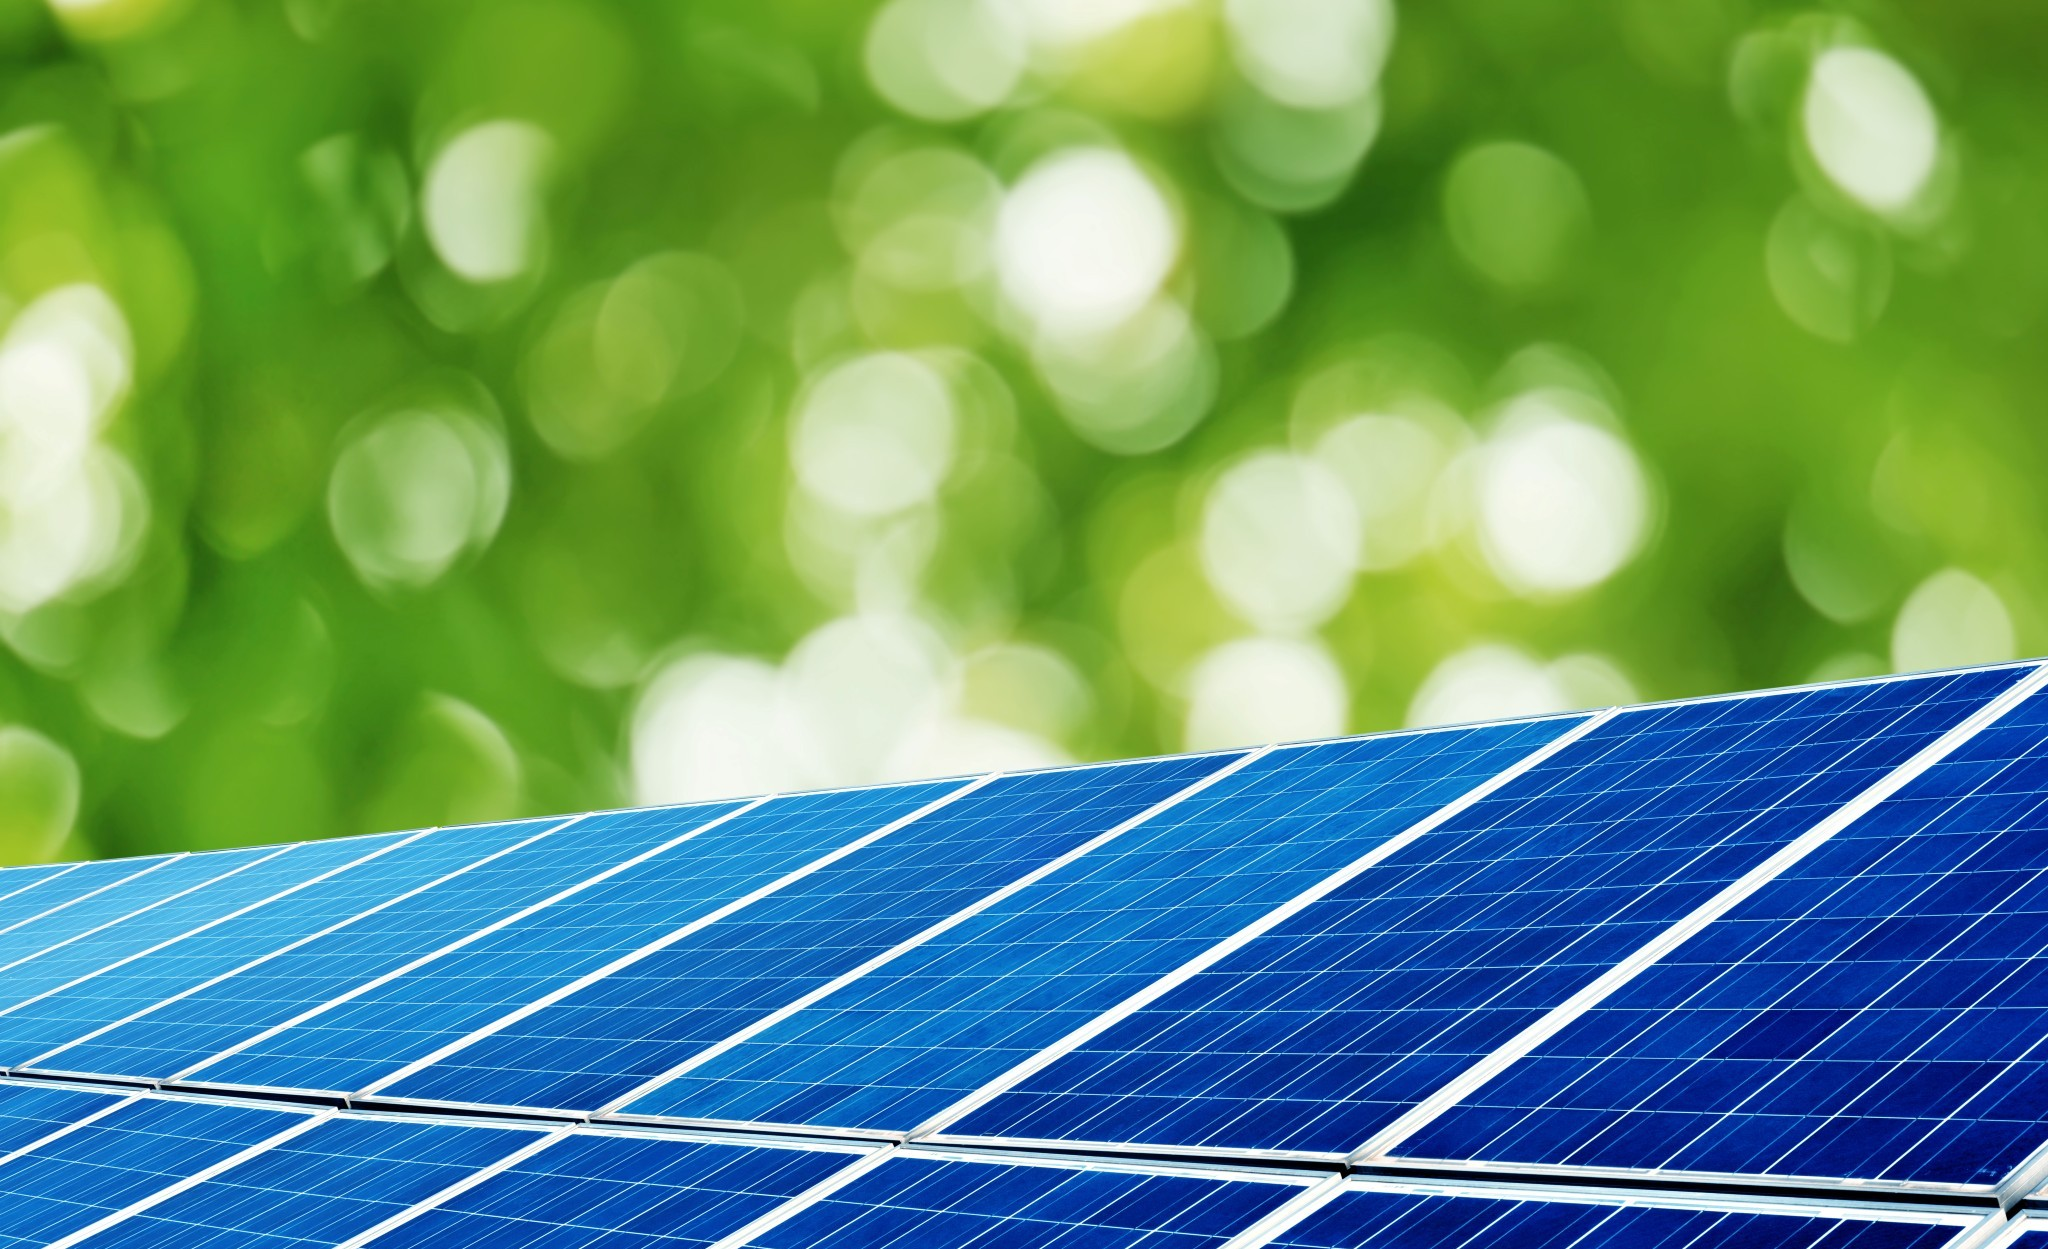 Solar panels under the trees background